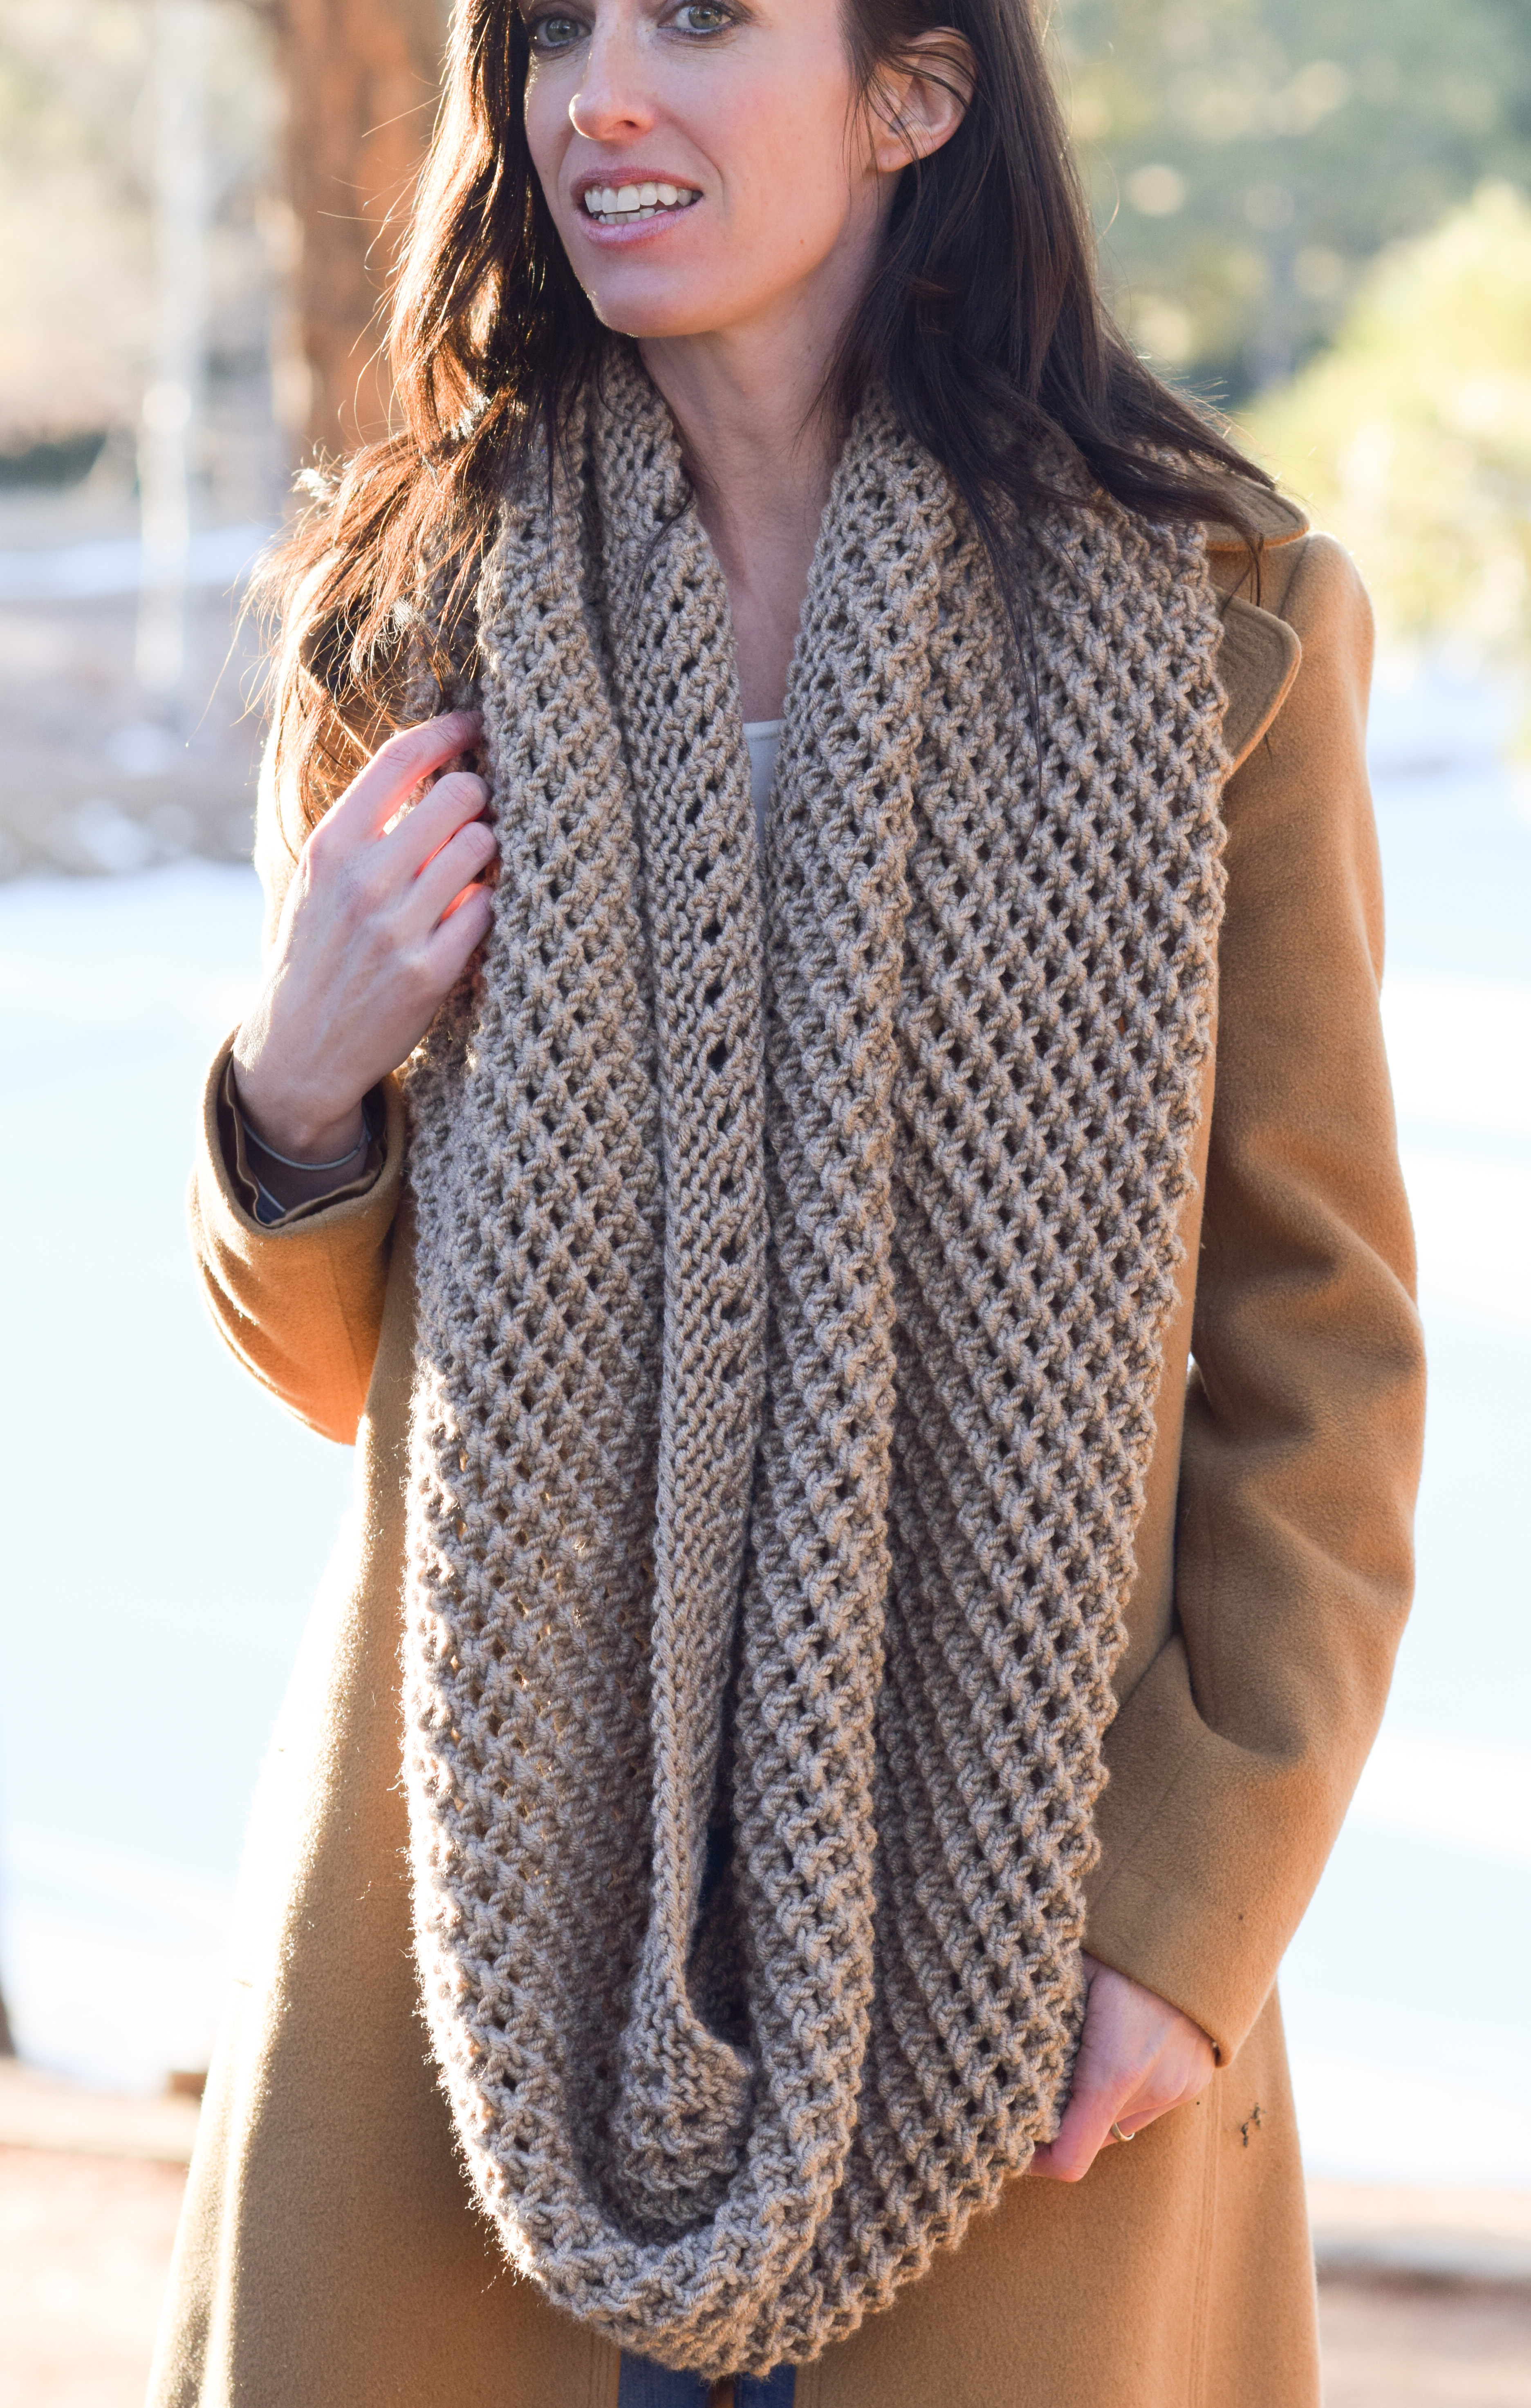 Knitted Scarves: Making You Look Beautiful